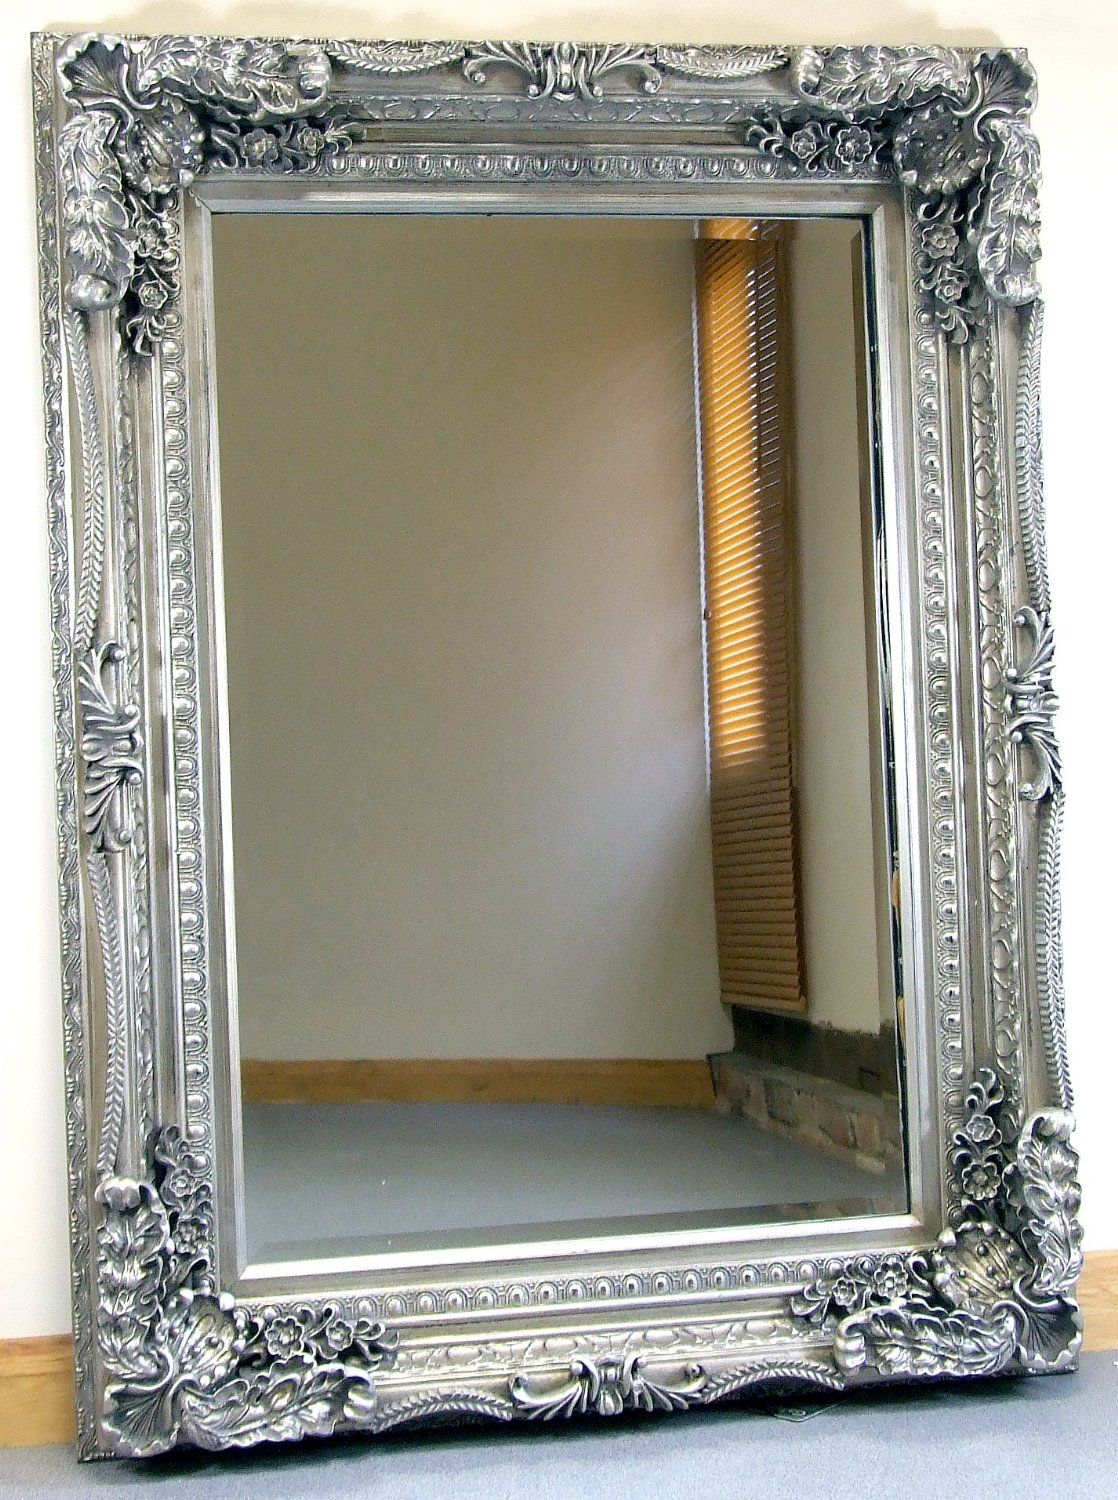 Amazon Framed Bathroom Mirrors carved louis silver ornate french frame wall / over mantle mirror